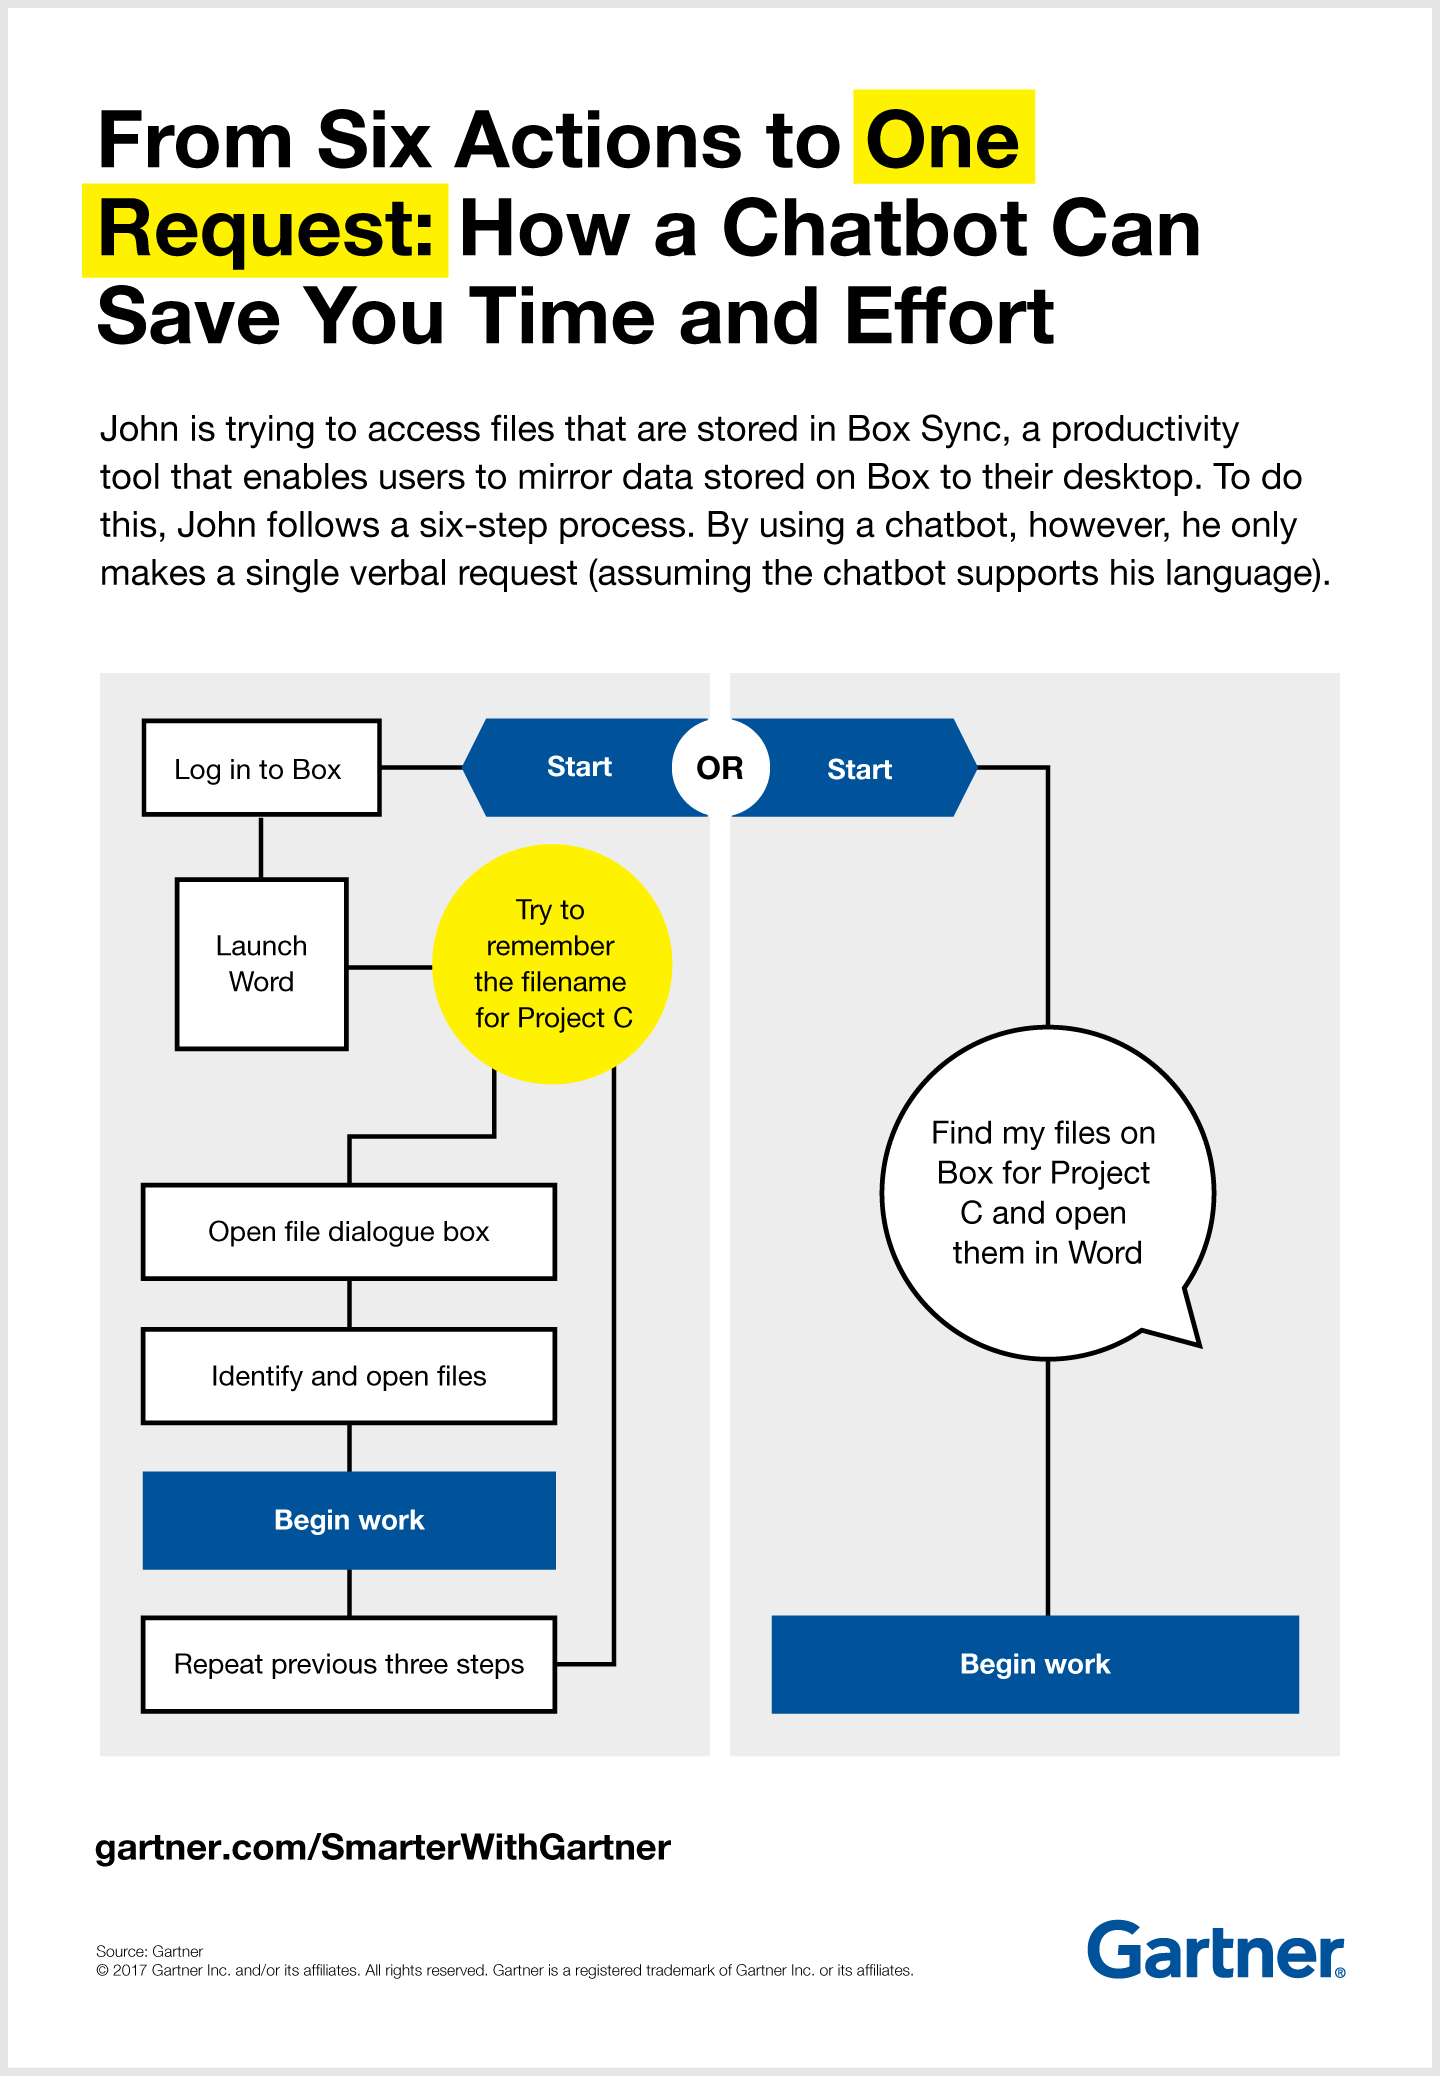 Gartner demonstrates how organizations can use chatbots to save time and money.